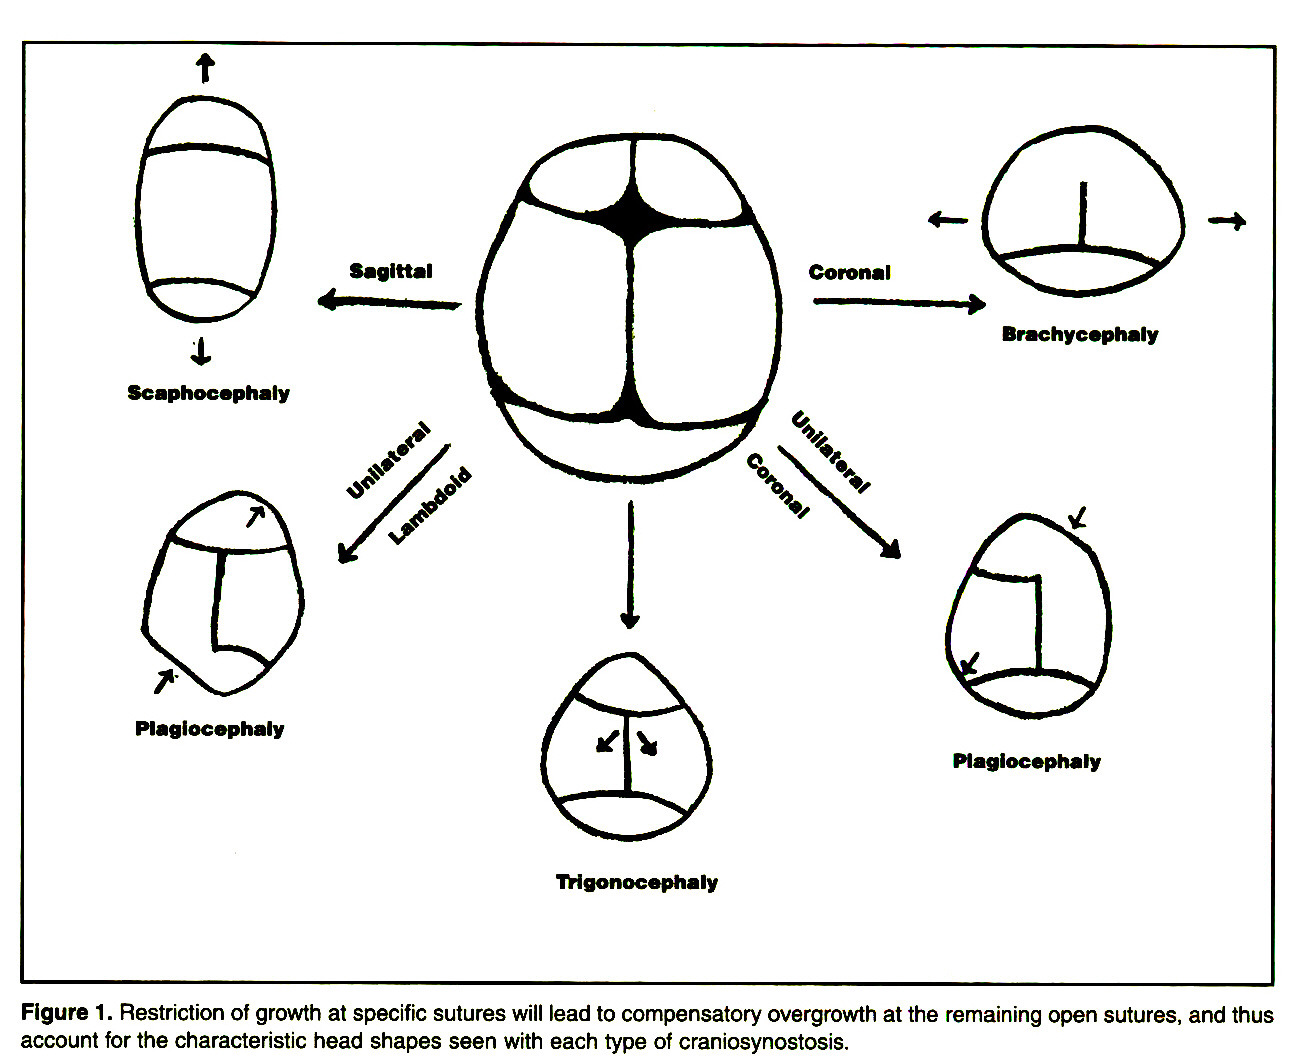 Figure 1. Restriction of growth at specific sutures will lead to compensatory overgrowth at the remaining open sutures, and thus account for the characteristic head shapes seen with each type of craniosynostosis.